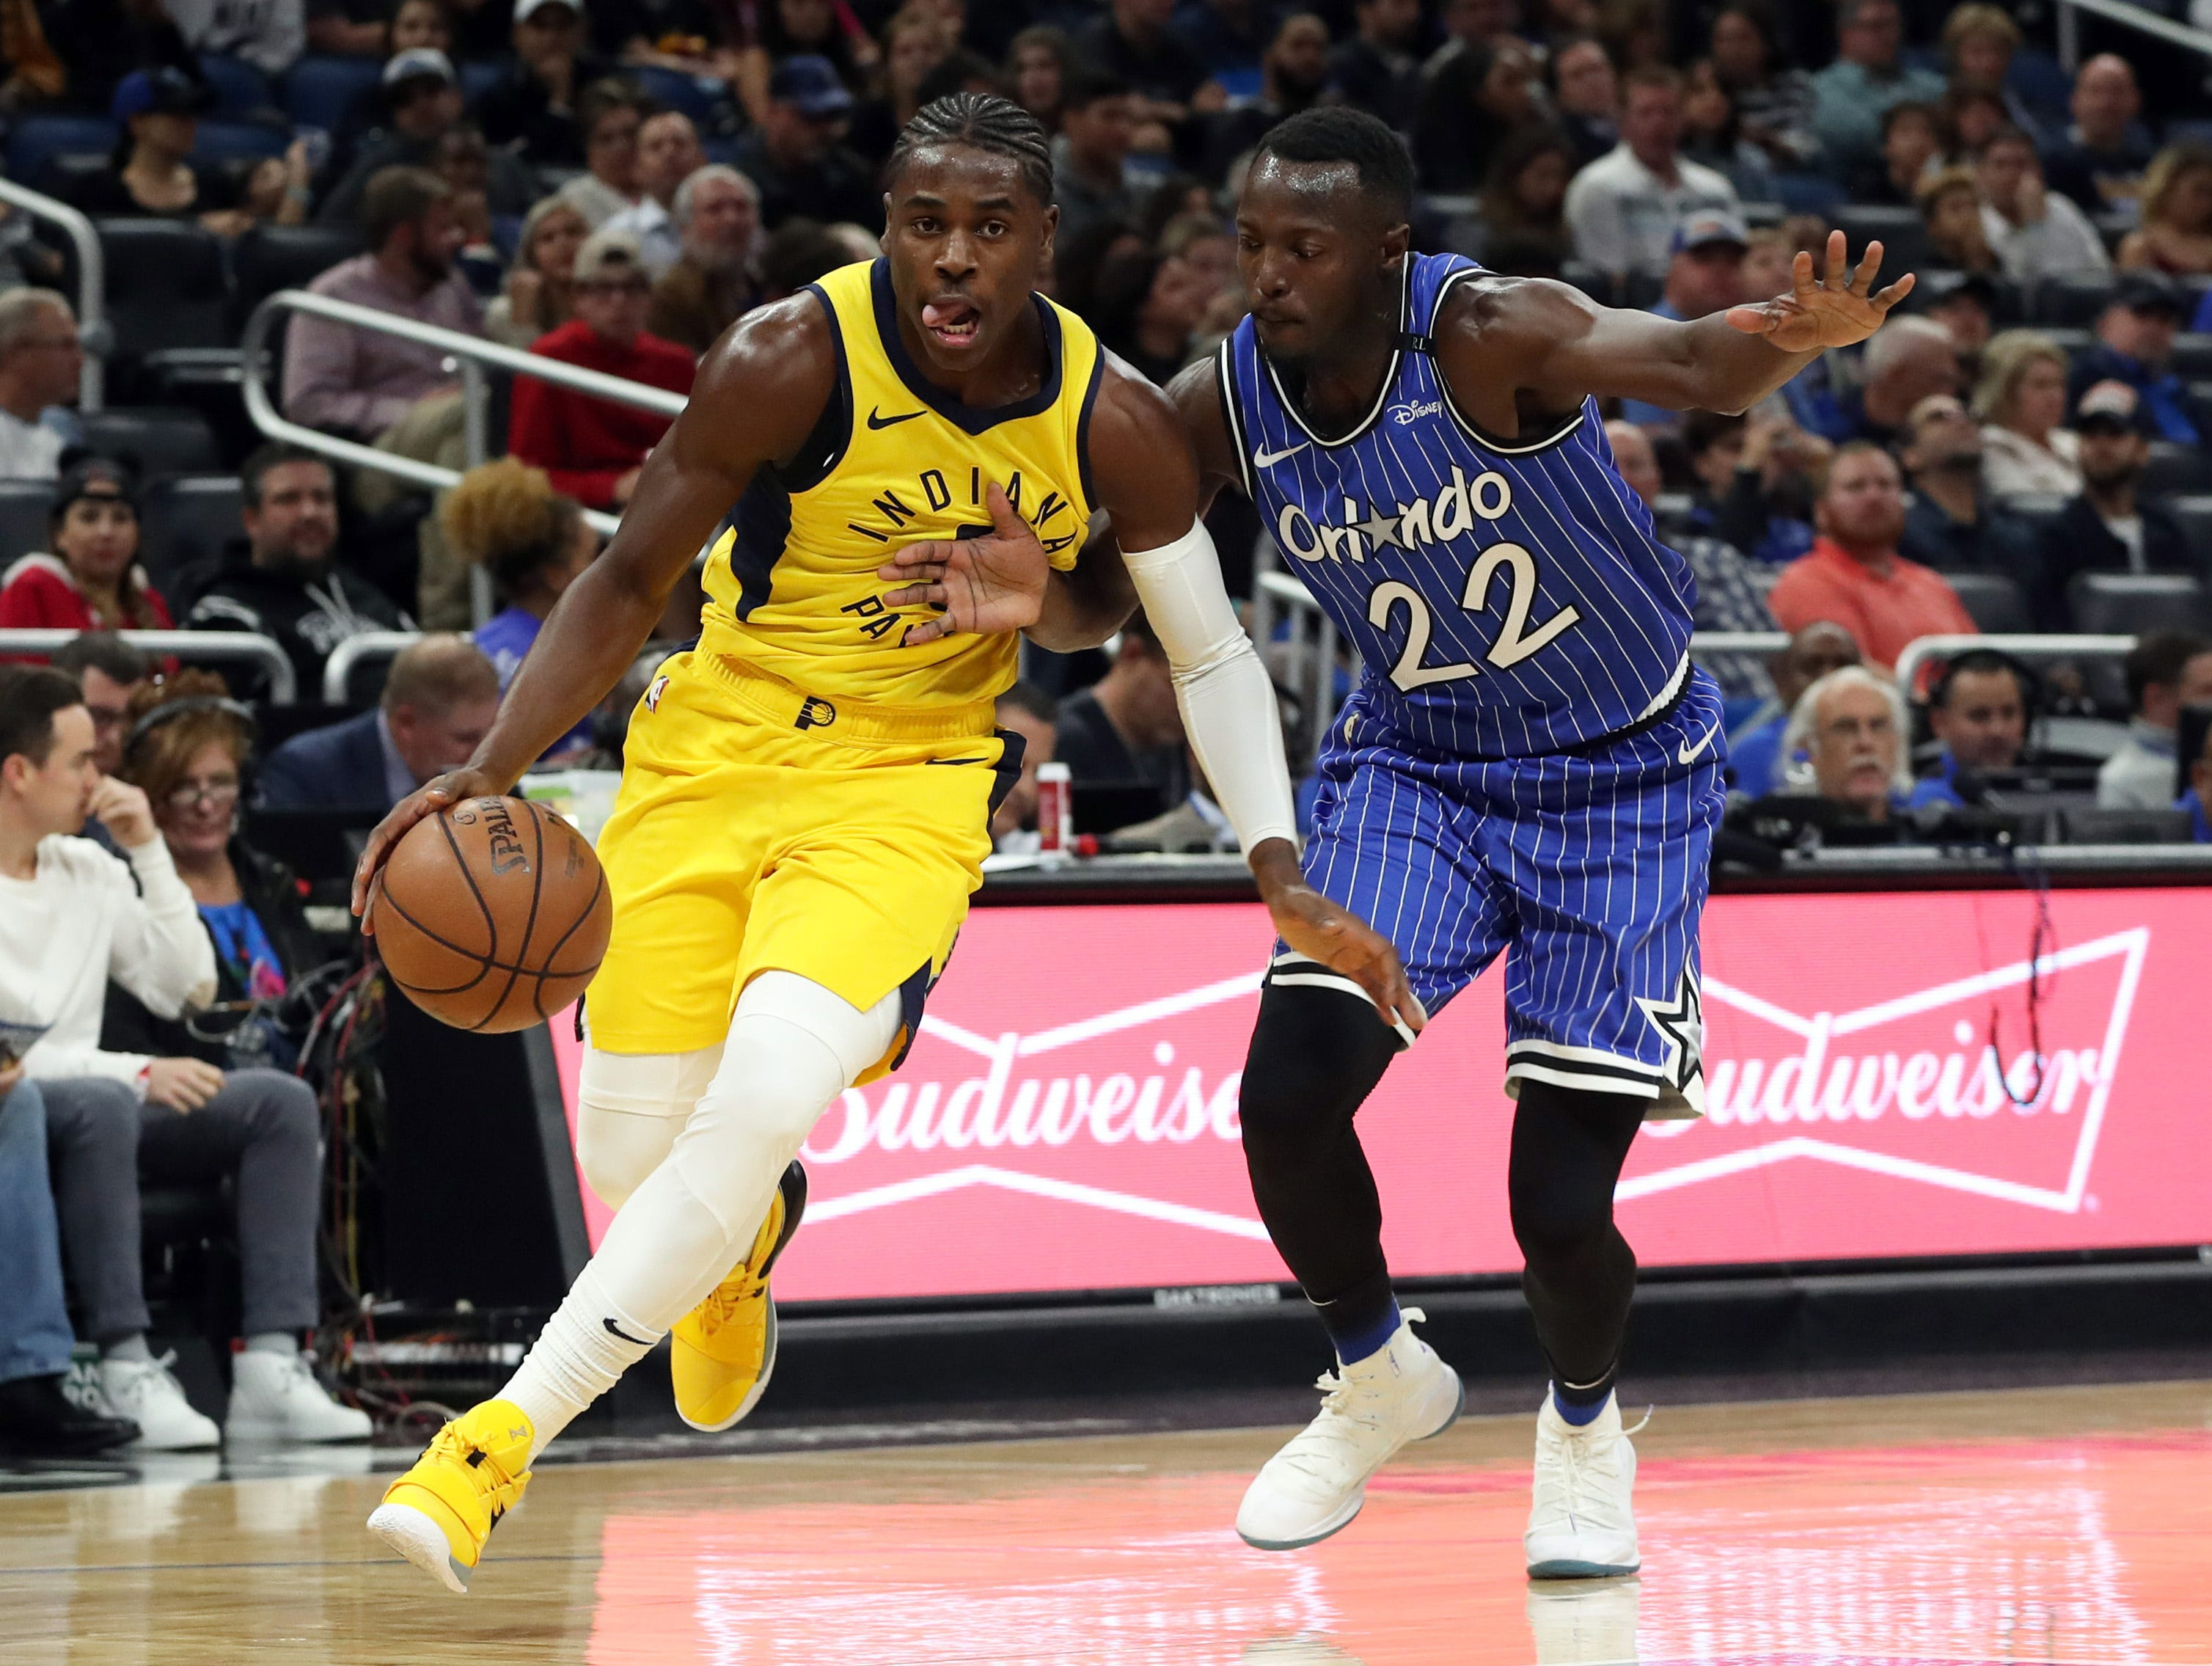 Dec 7, 2018; Orlando, FL, USA; Indiana Pacers guard Aaron Holiday (3) drives to the basket as Orlando Magic guard Jerian Grant (22) defends during the second quarter at Amway Center. Mandatory Credit: Kim Klement-USA TODAY Sports